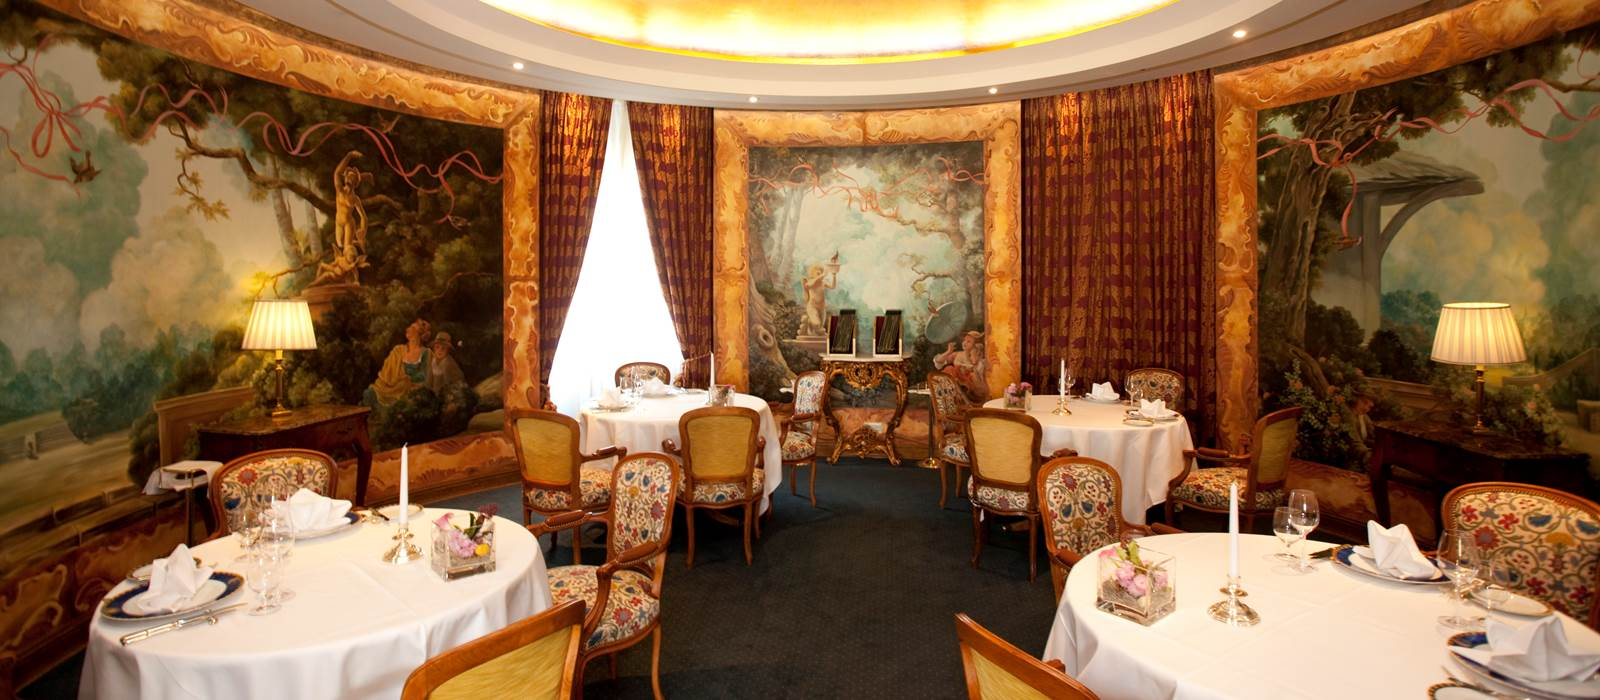 http://www.grandhotelwien.com/dine-with-us/le-ciel-by-toni-moerwald/